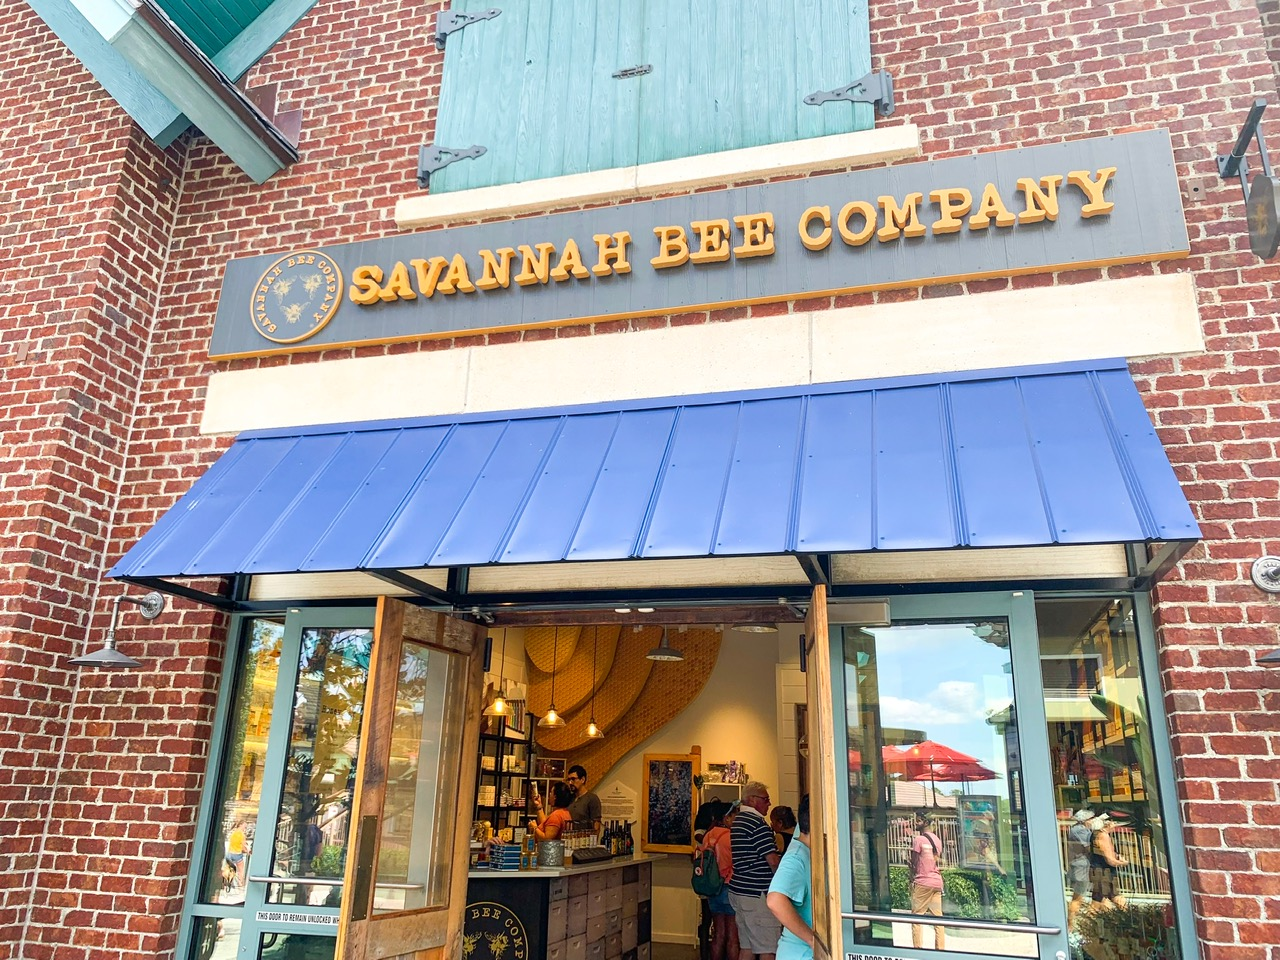 Storefront of the Savannah Bee Company - a brick building with a blue awning and yellow letters on a grey background